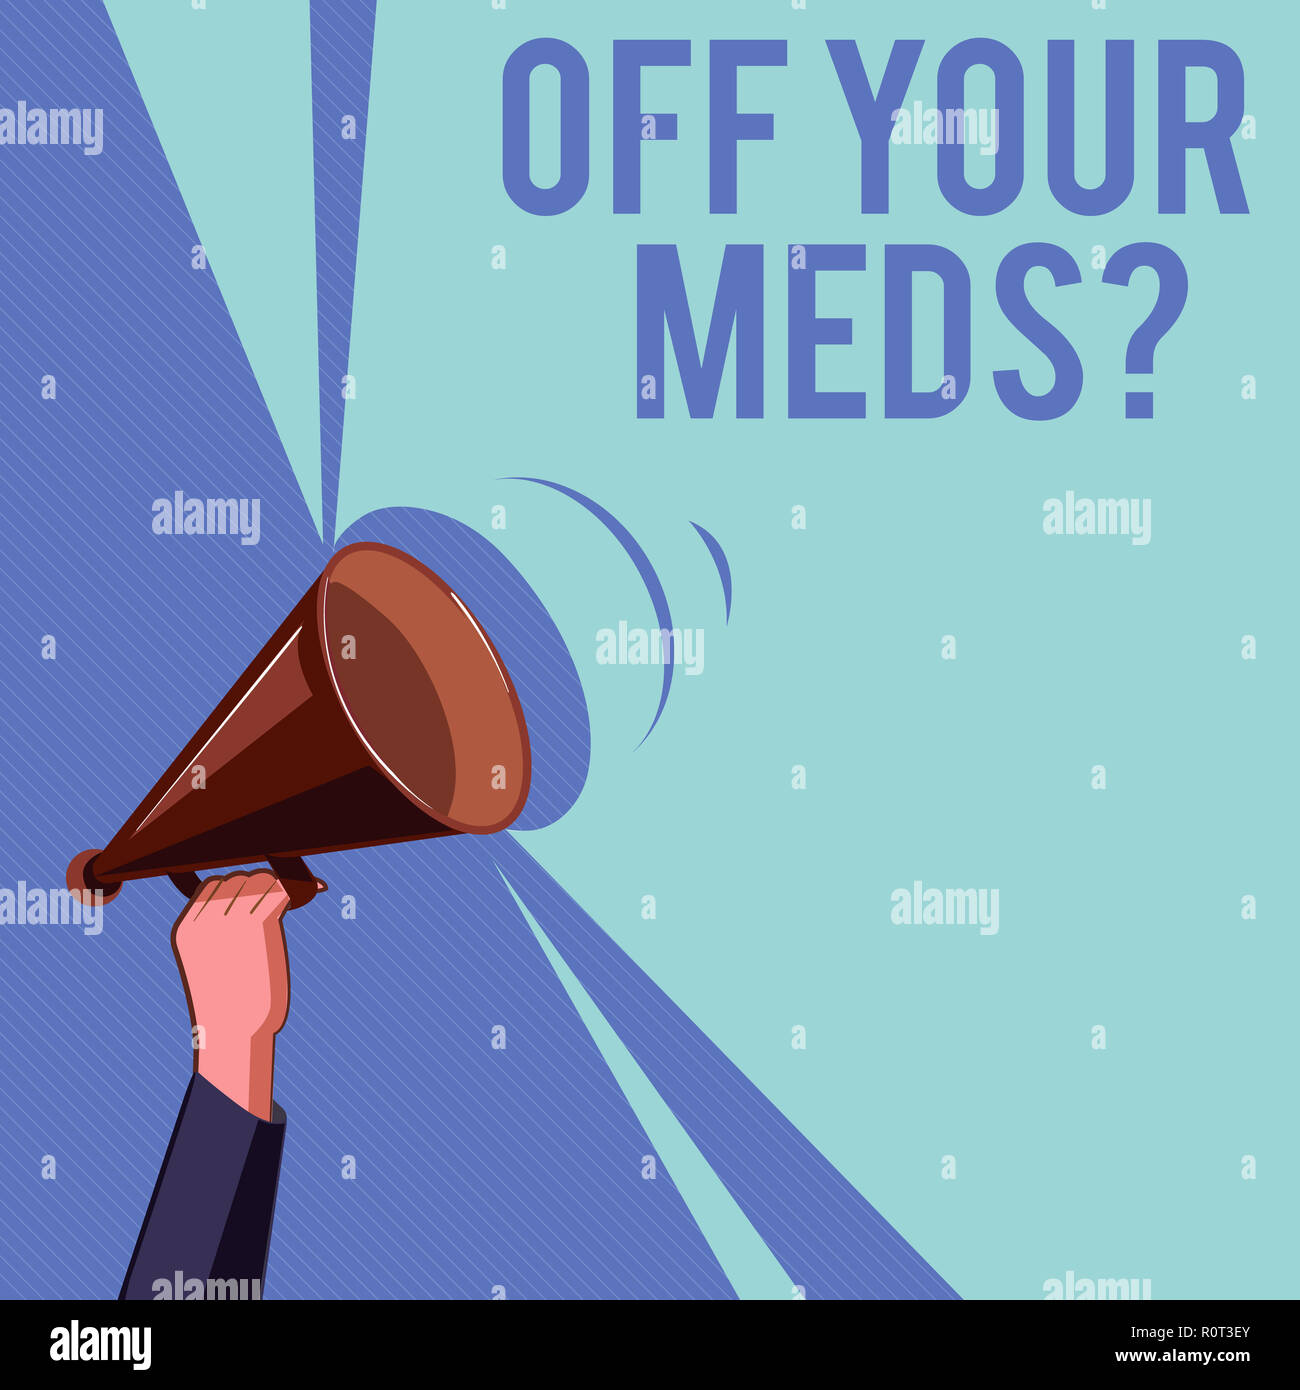 Text sign showing Off Your Meds question. Conceptual photo Stopping the usage of prescribe medications. - Stock Image